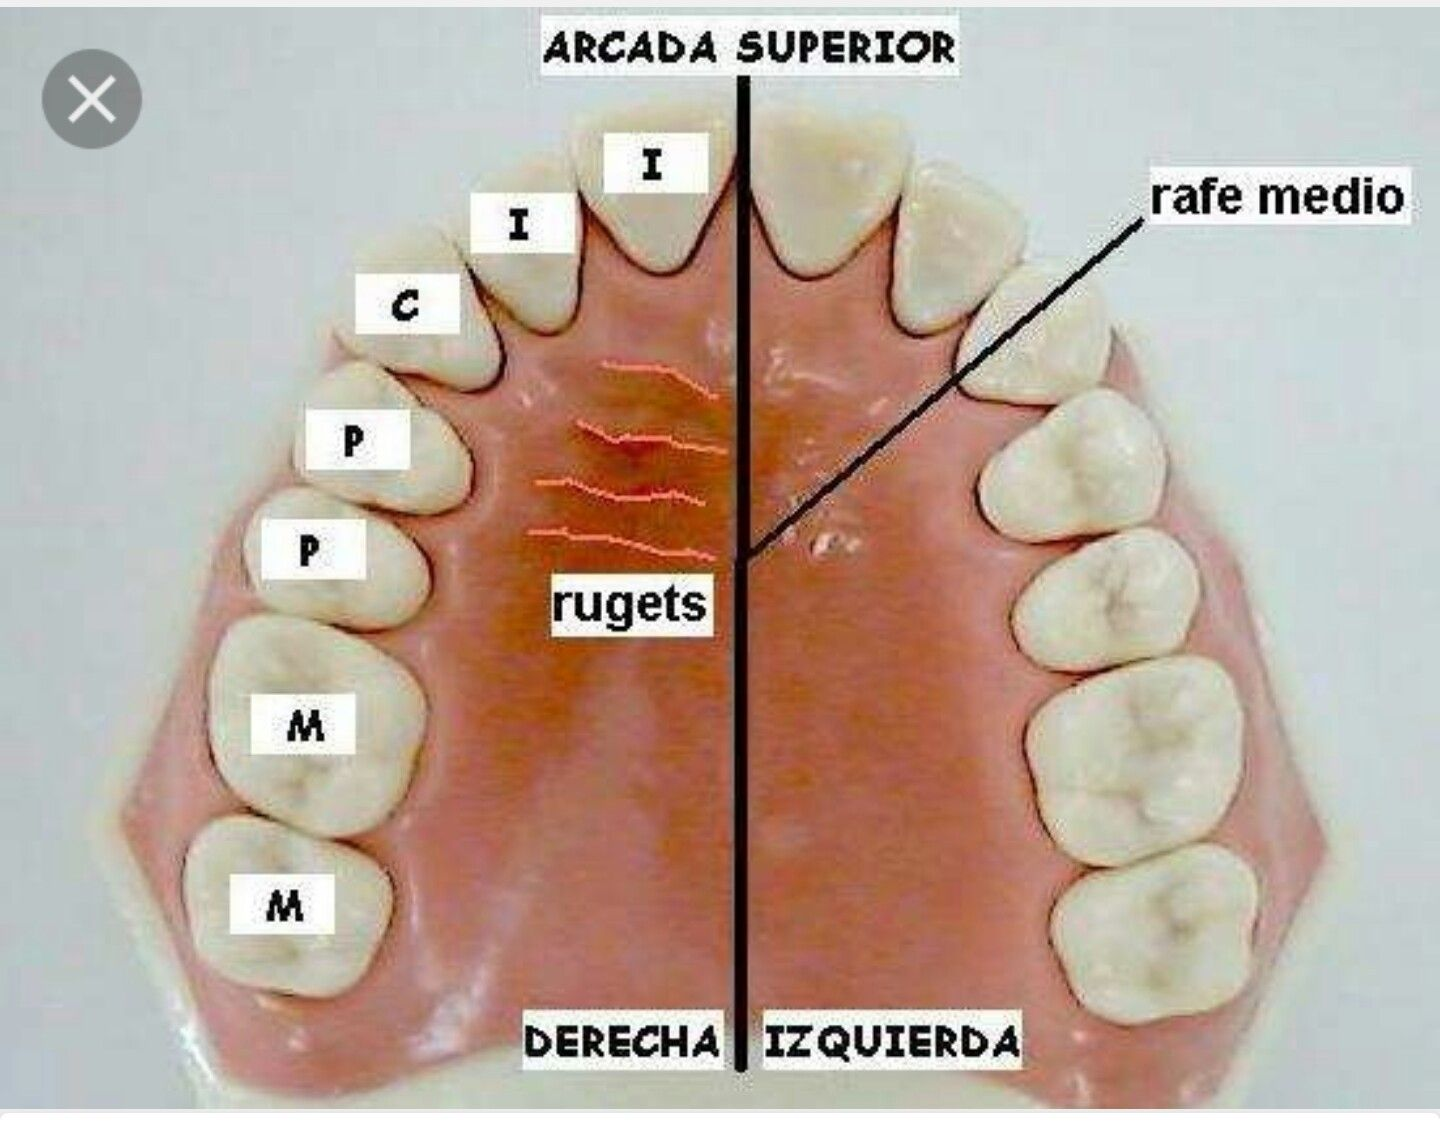 Pin by Ana Belen on anatomia dental | Pinterest